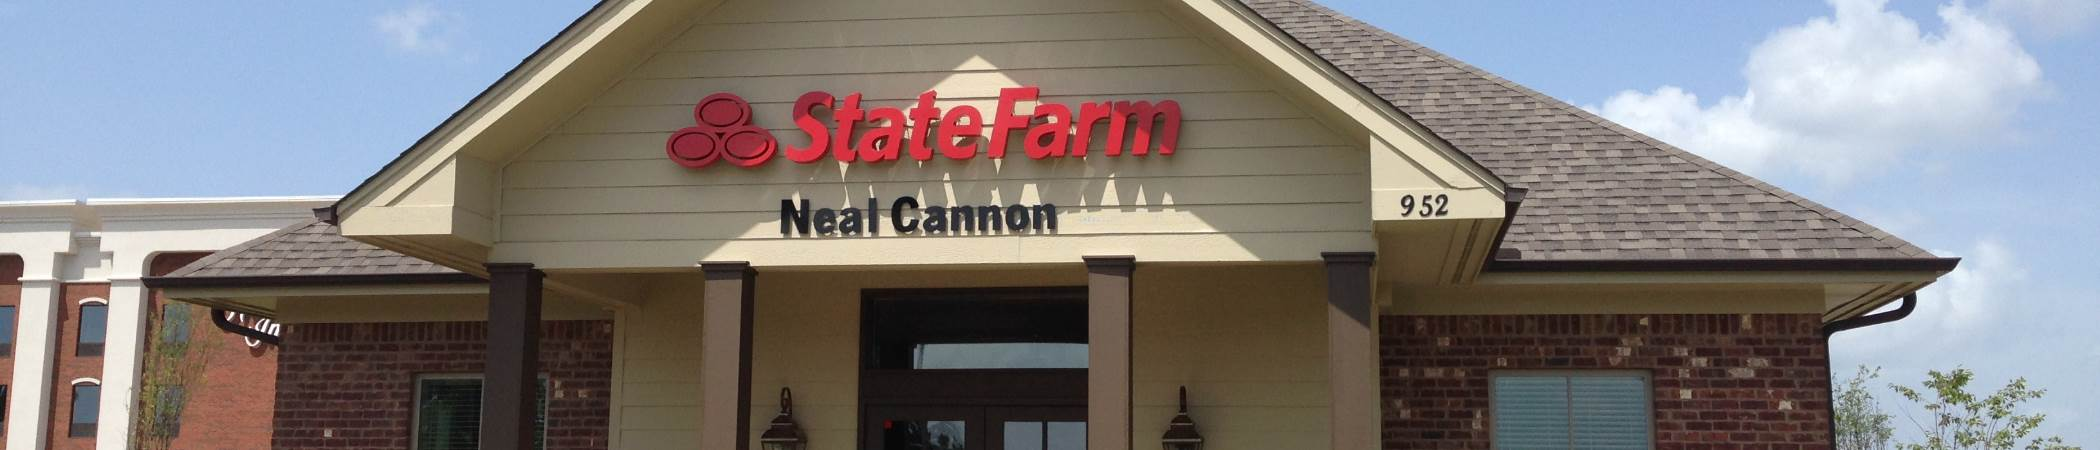 Neal Cannon State Farm Insurance in Hernando, MS | Home, Auto Insurance & more